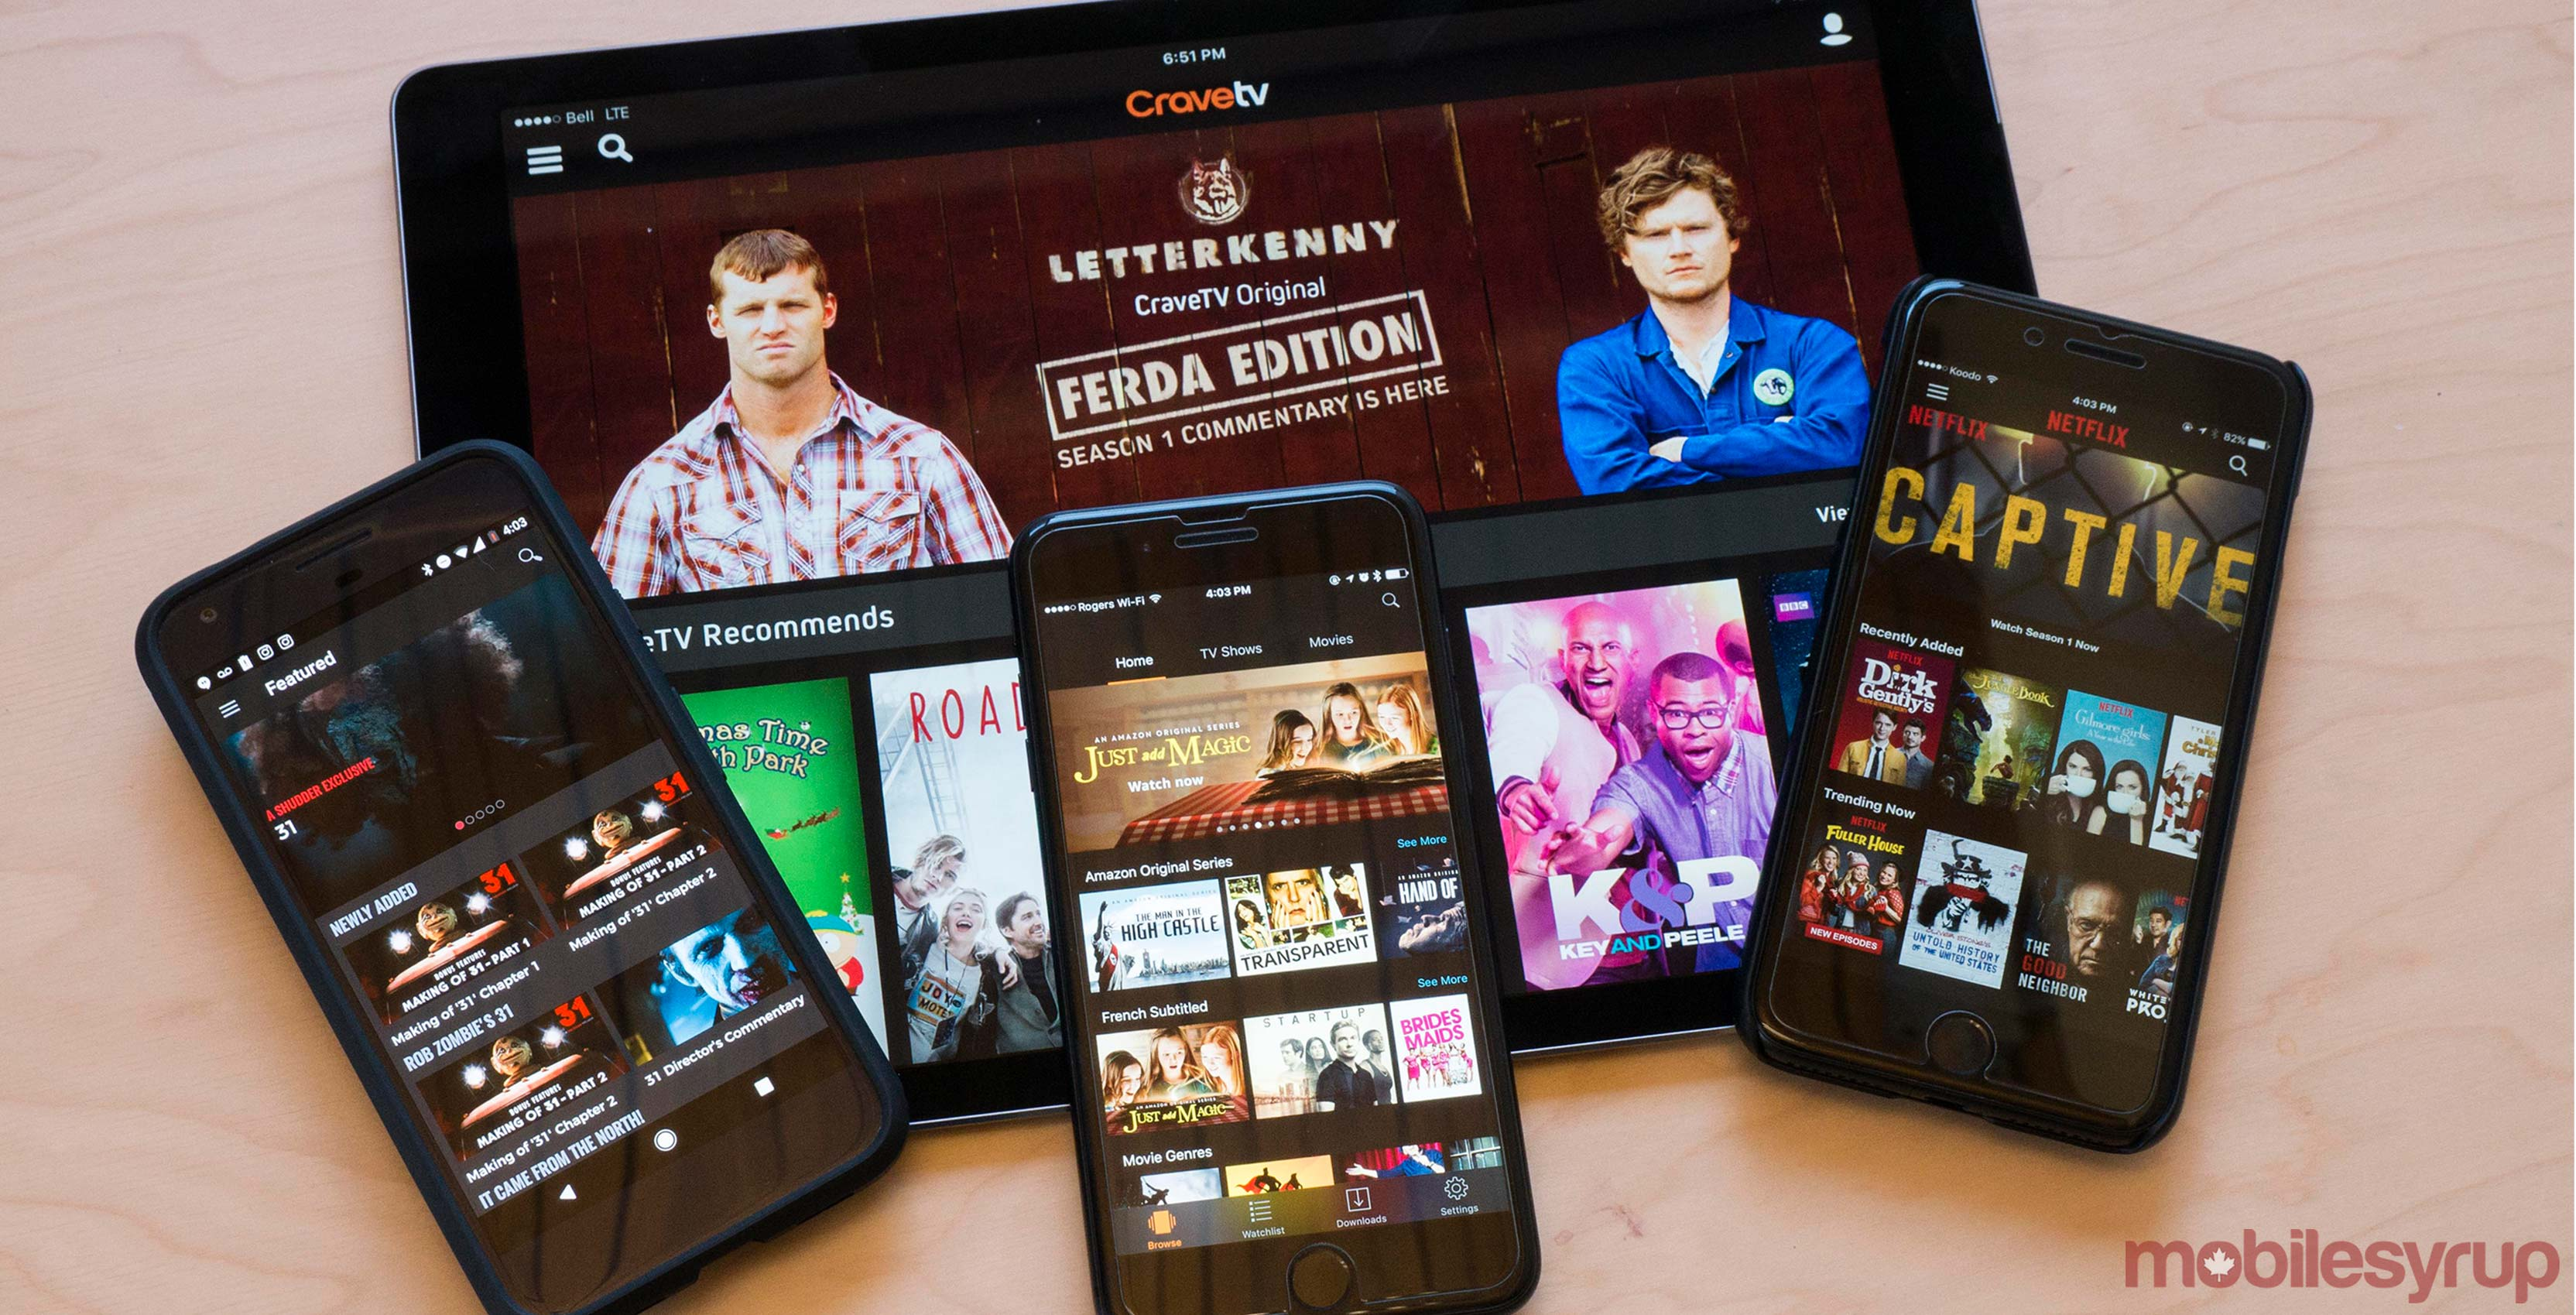 MobileSyrup's guide to streaming video services in Canada